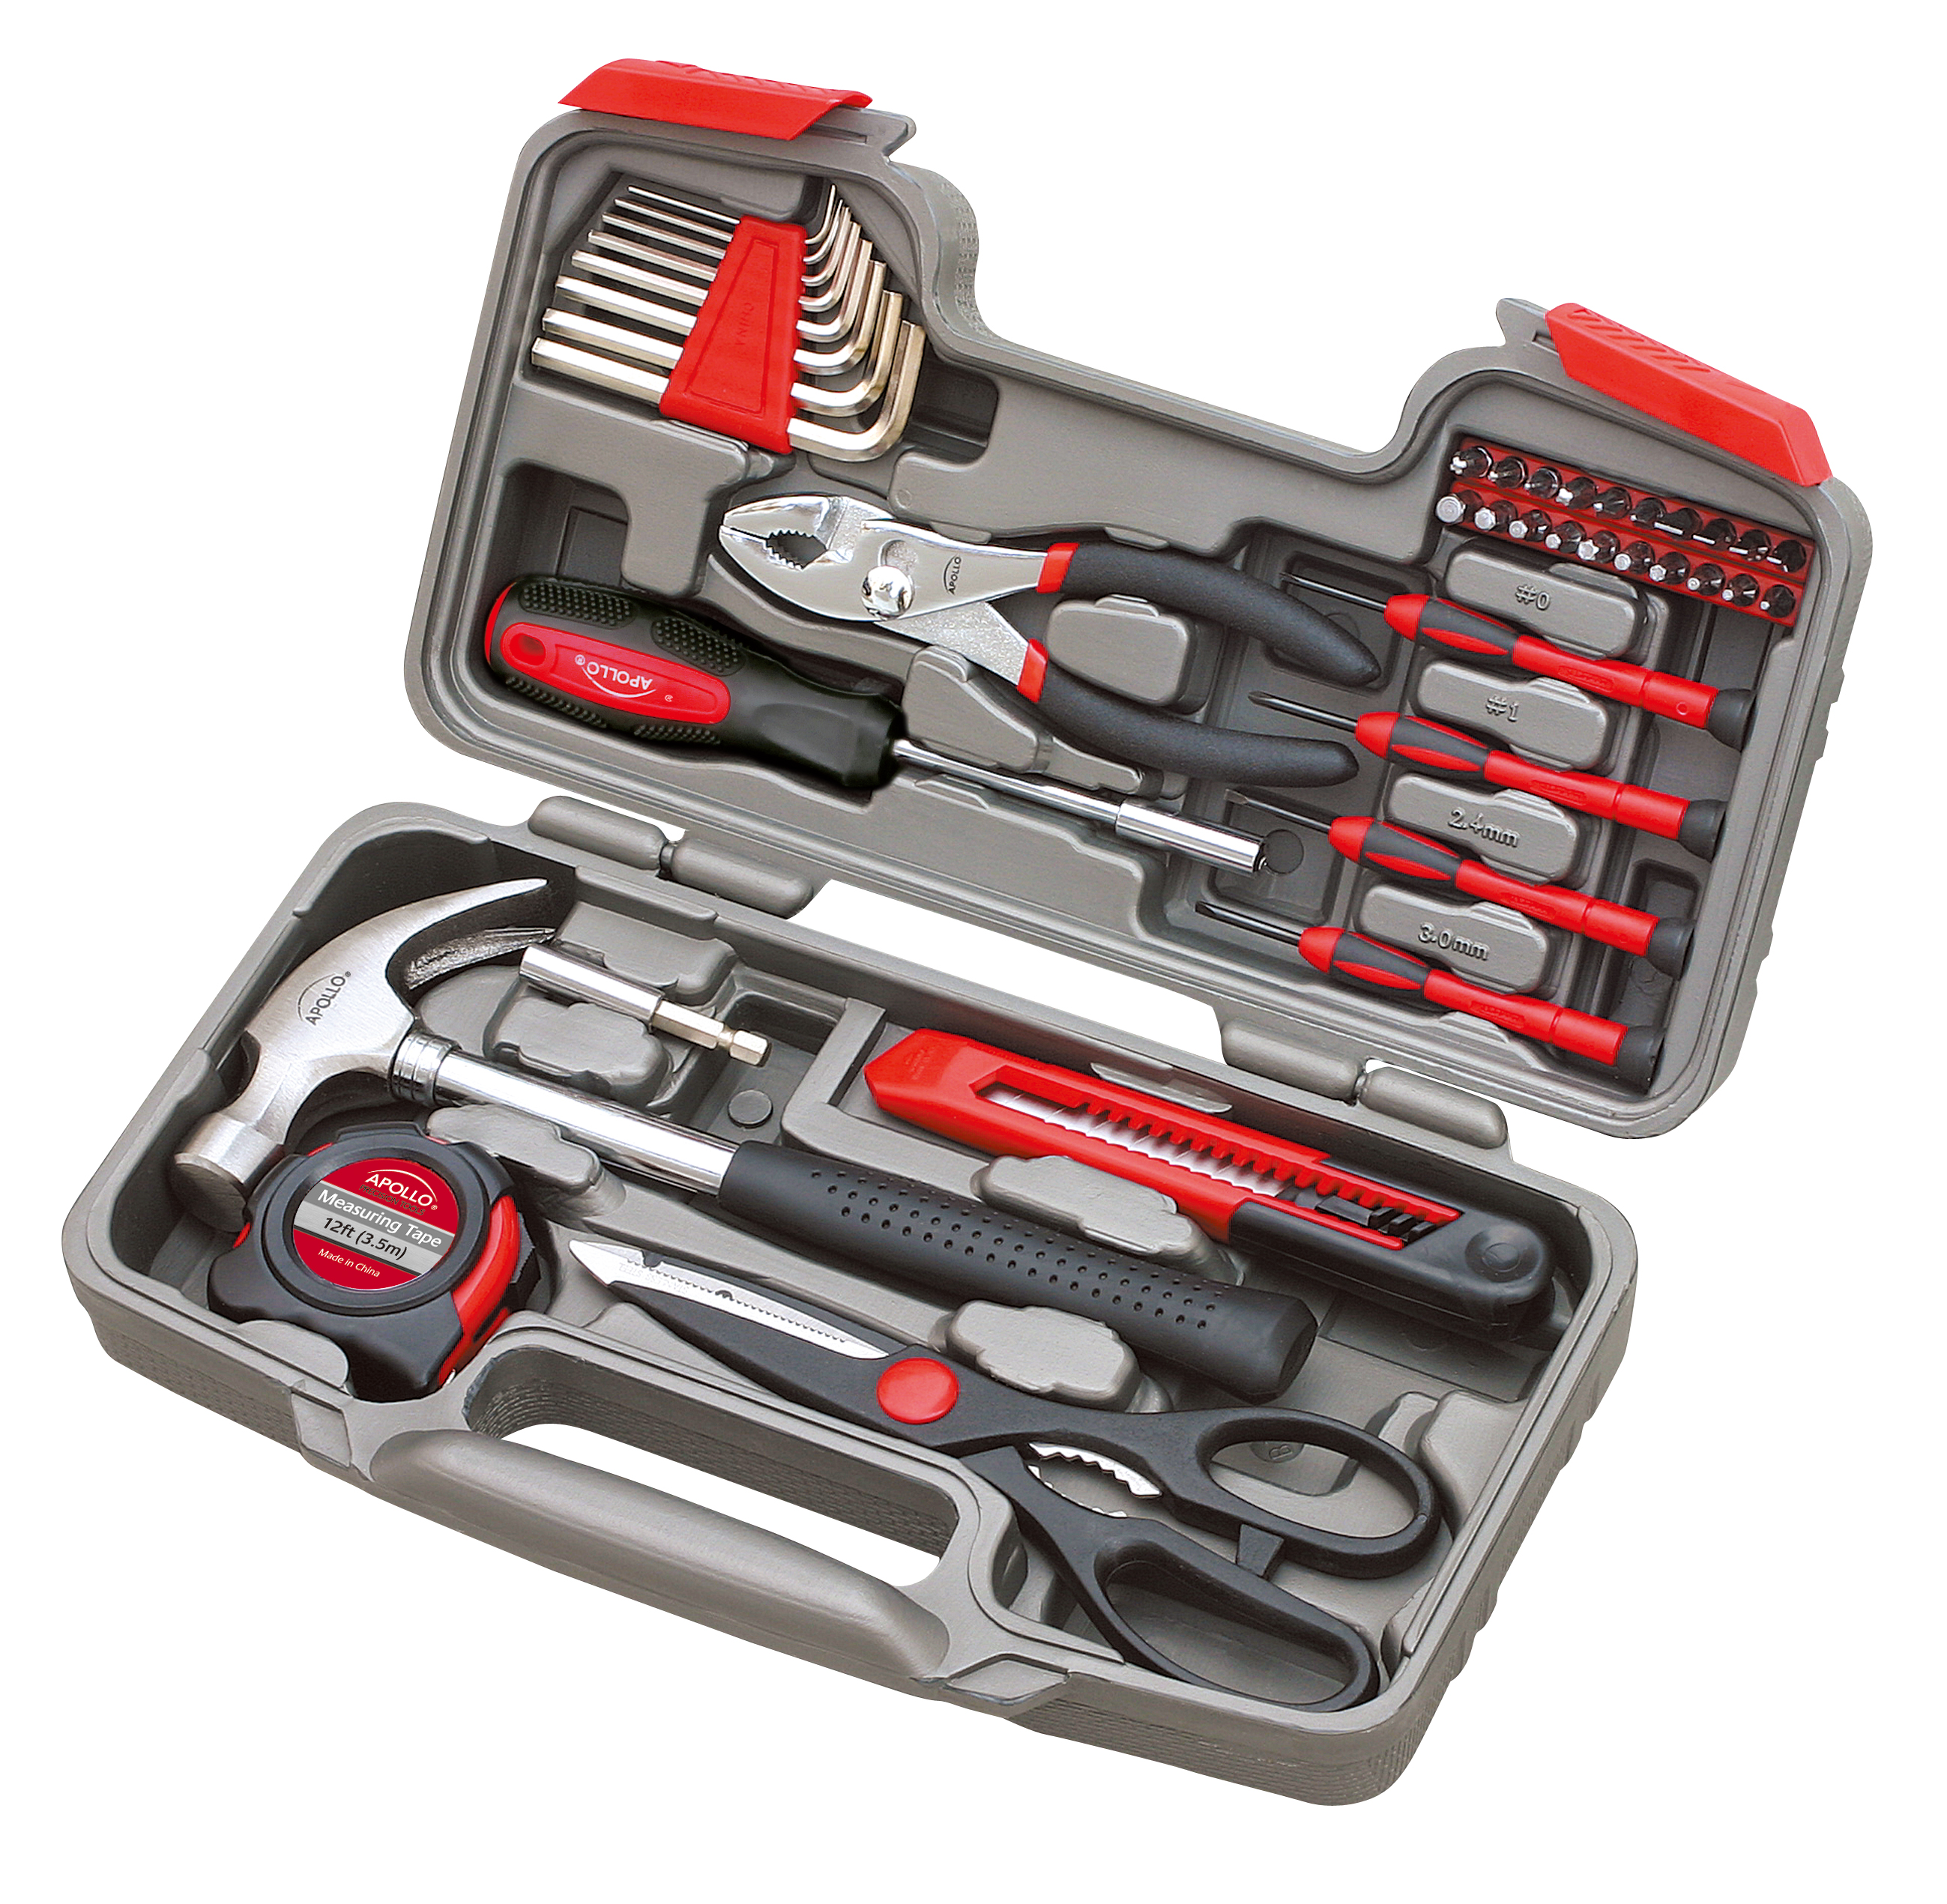 Apollo Tools DT9706 39-Piece Hand Tool Set